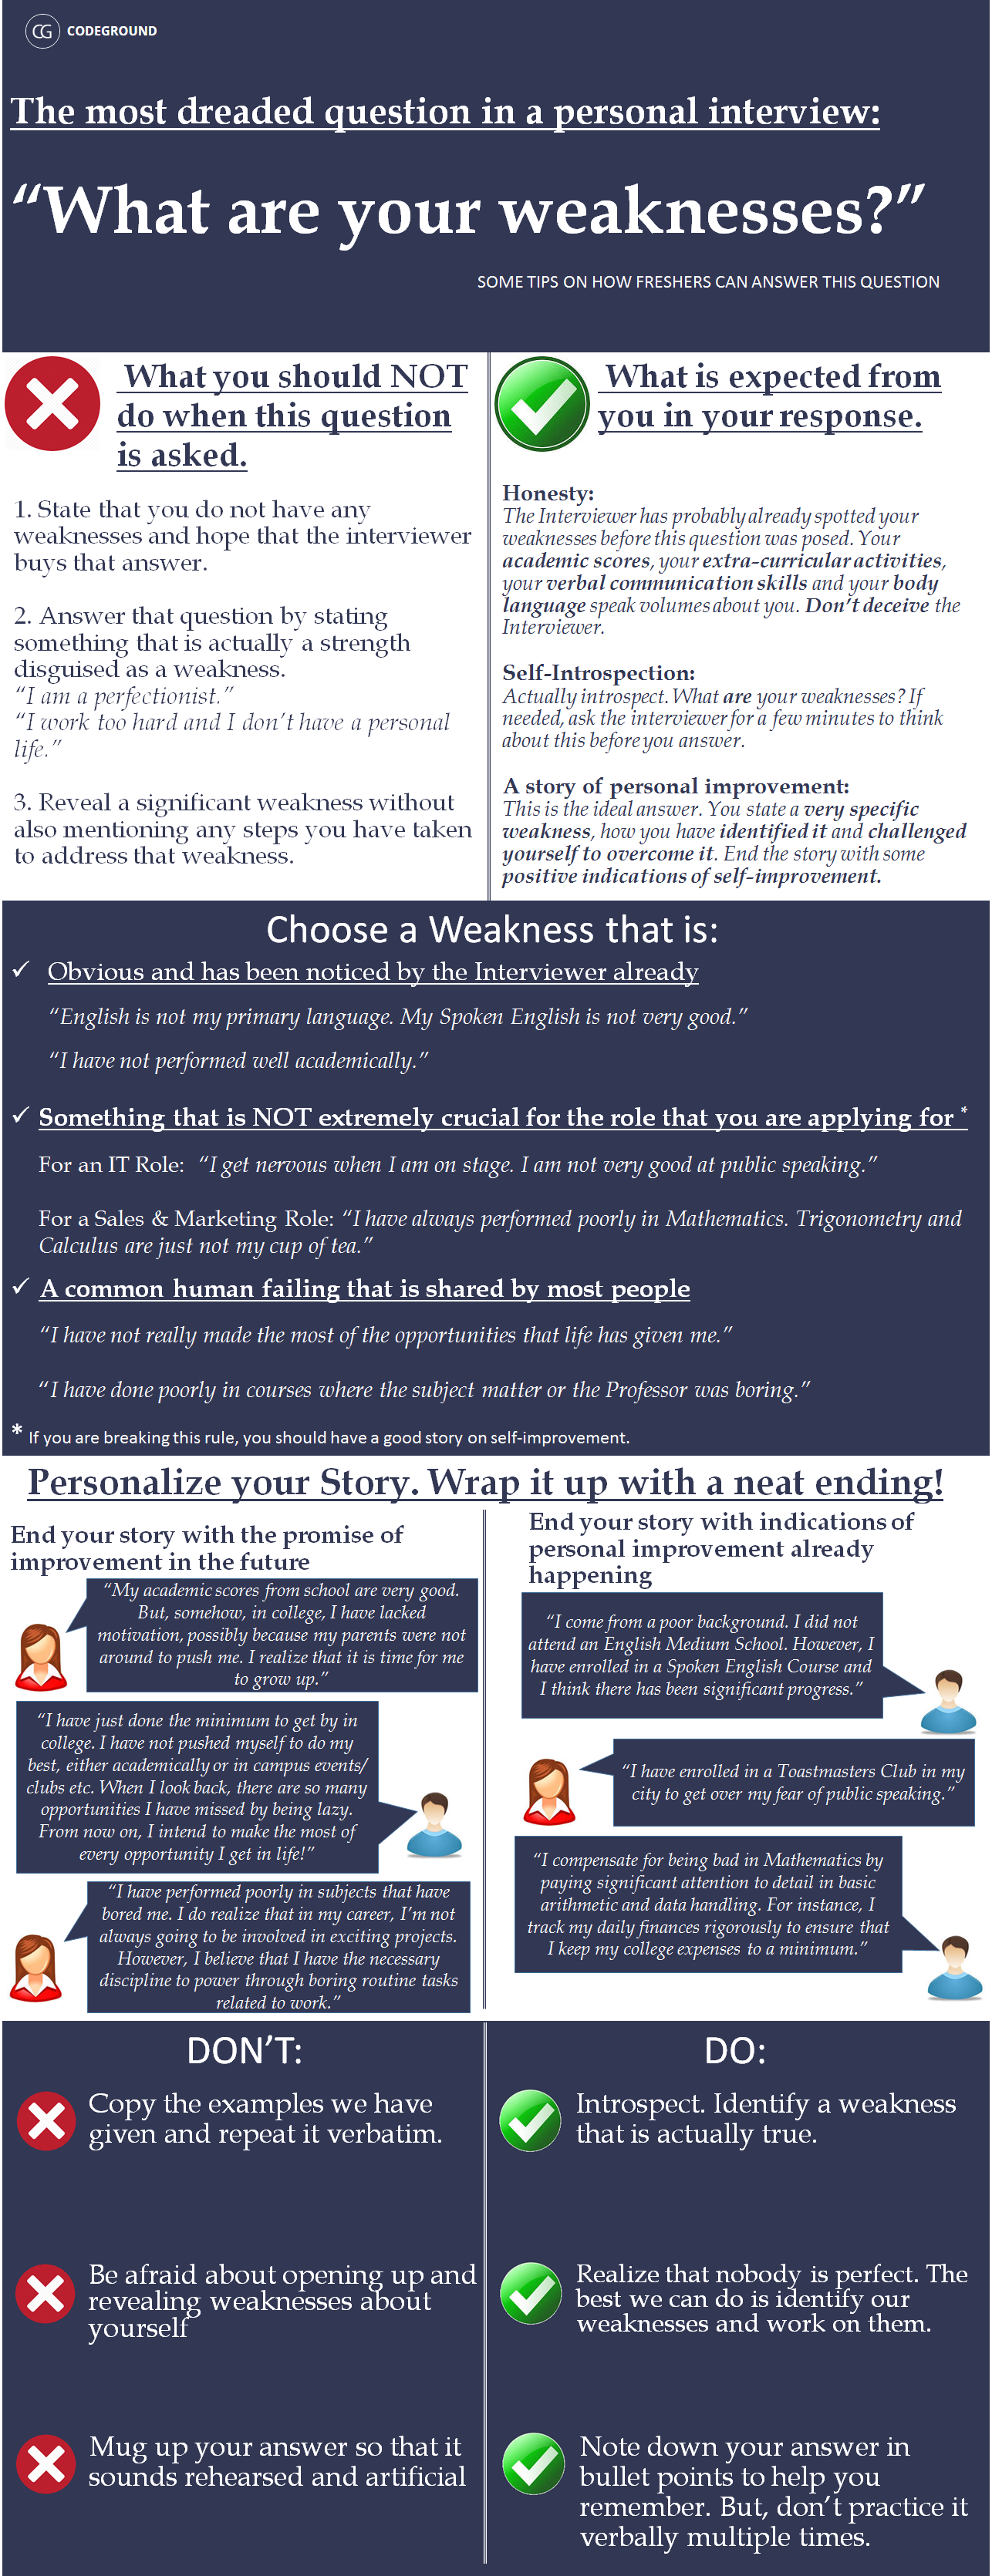 """What are your weaknesses?"" - This is possibly the most dreaded question in any interview. Here is an InfoGraphic with a few tips on helping you answer this question and acing your interview."